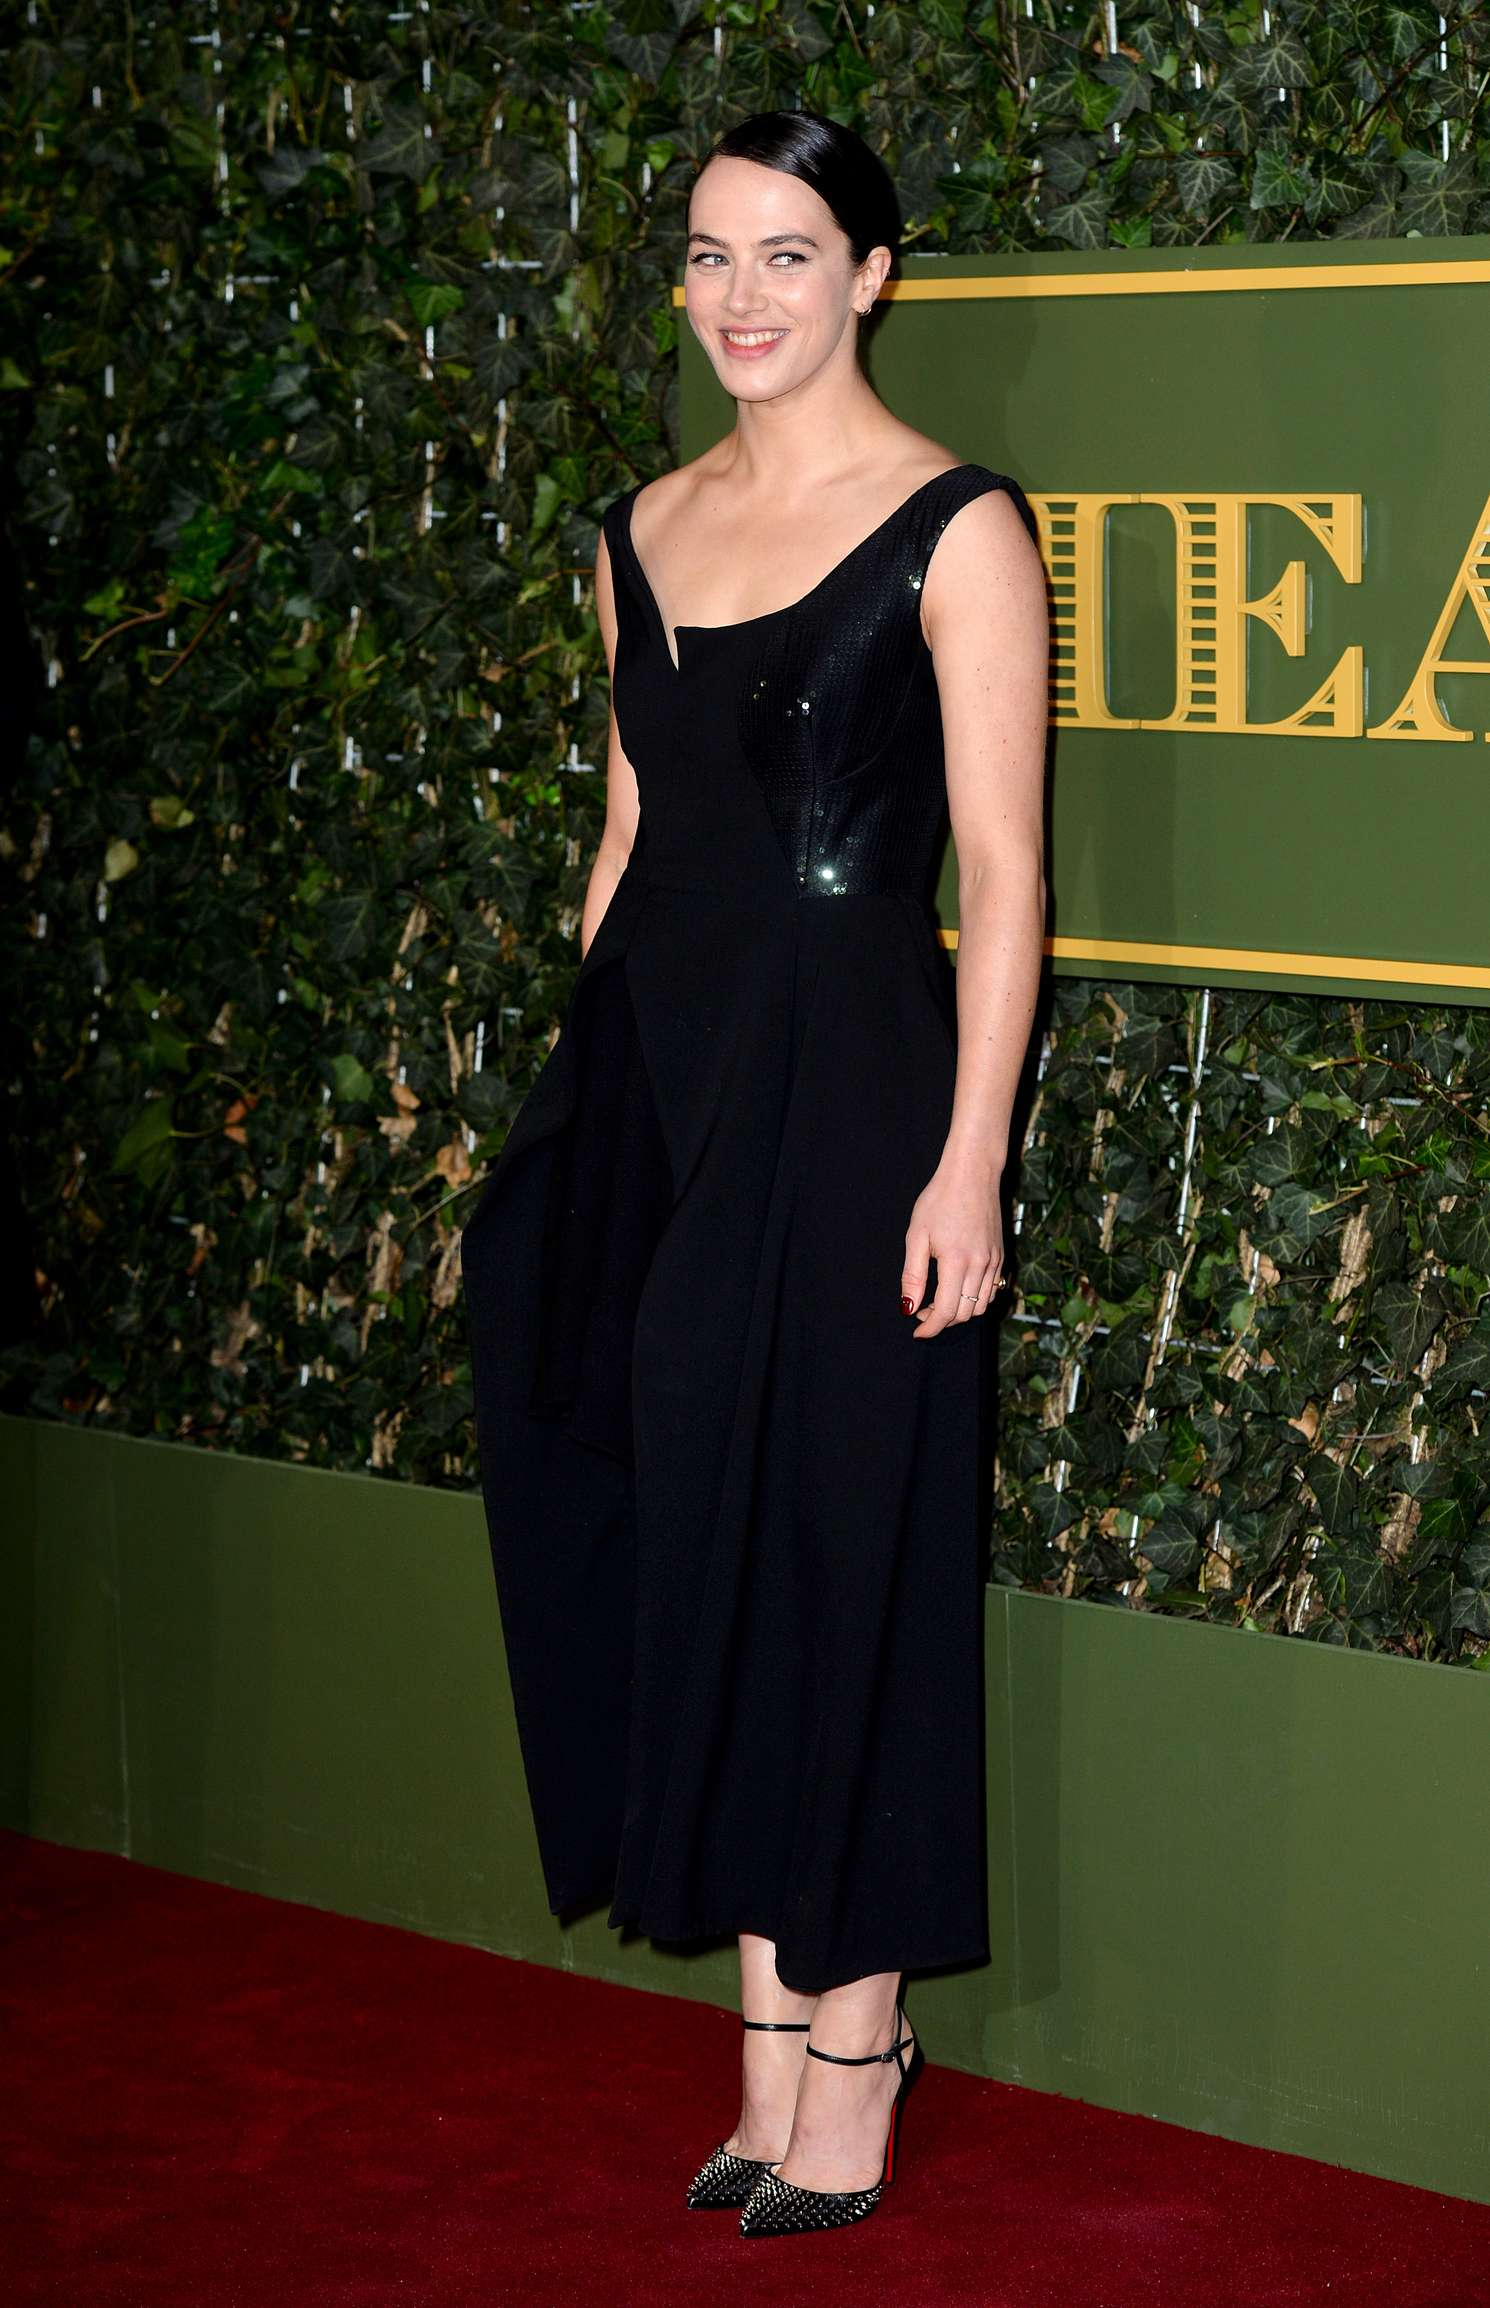 Jessica Brown Findlay 2015 : Jessica Brown Findlay: Evening Standard Theatre Awards 2015 -03